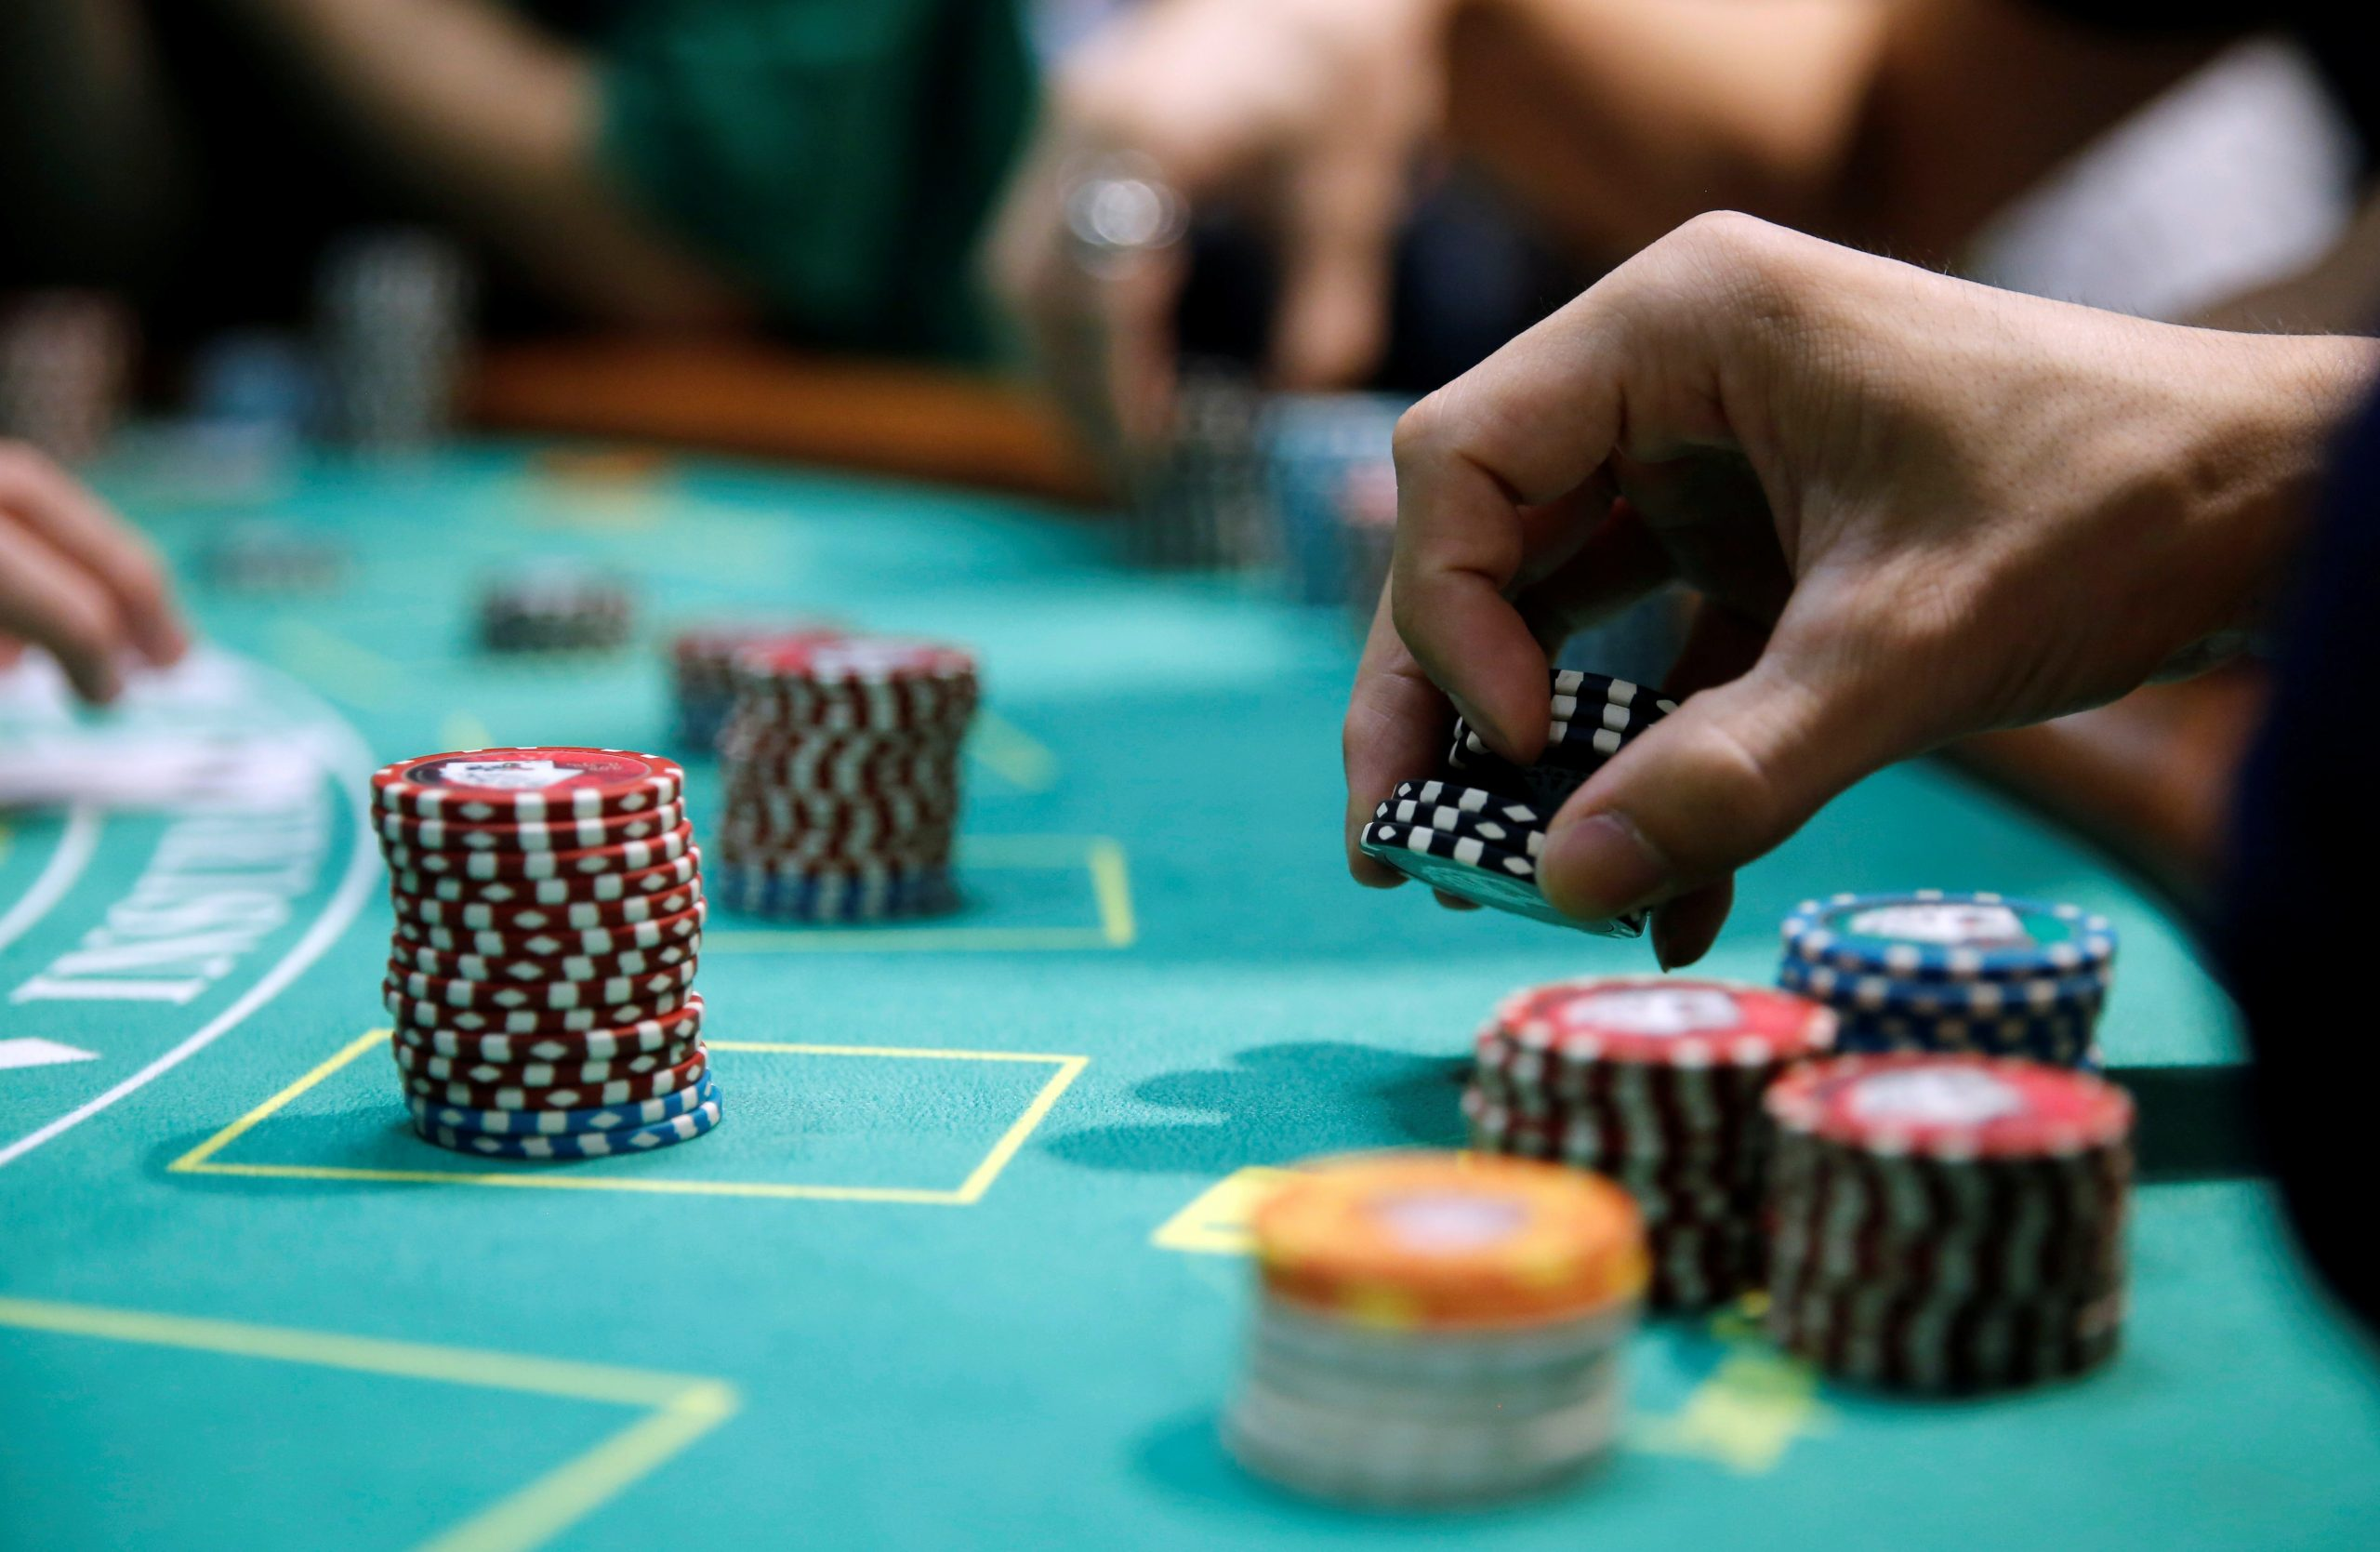 Best Poker Sites - Easy Online Poker Sites To Earn Money